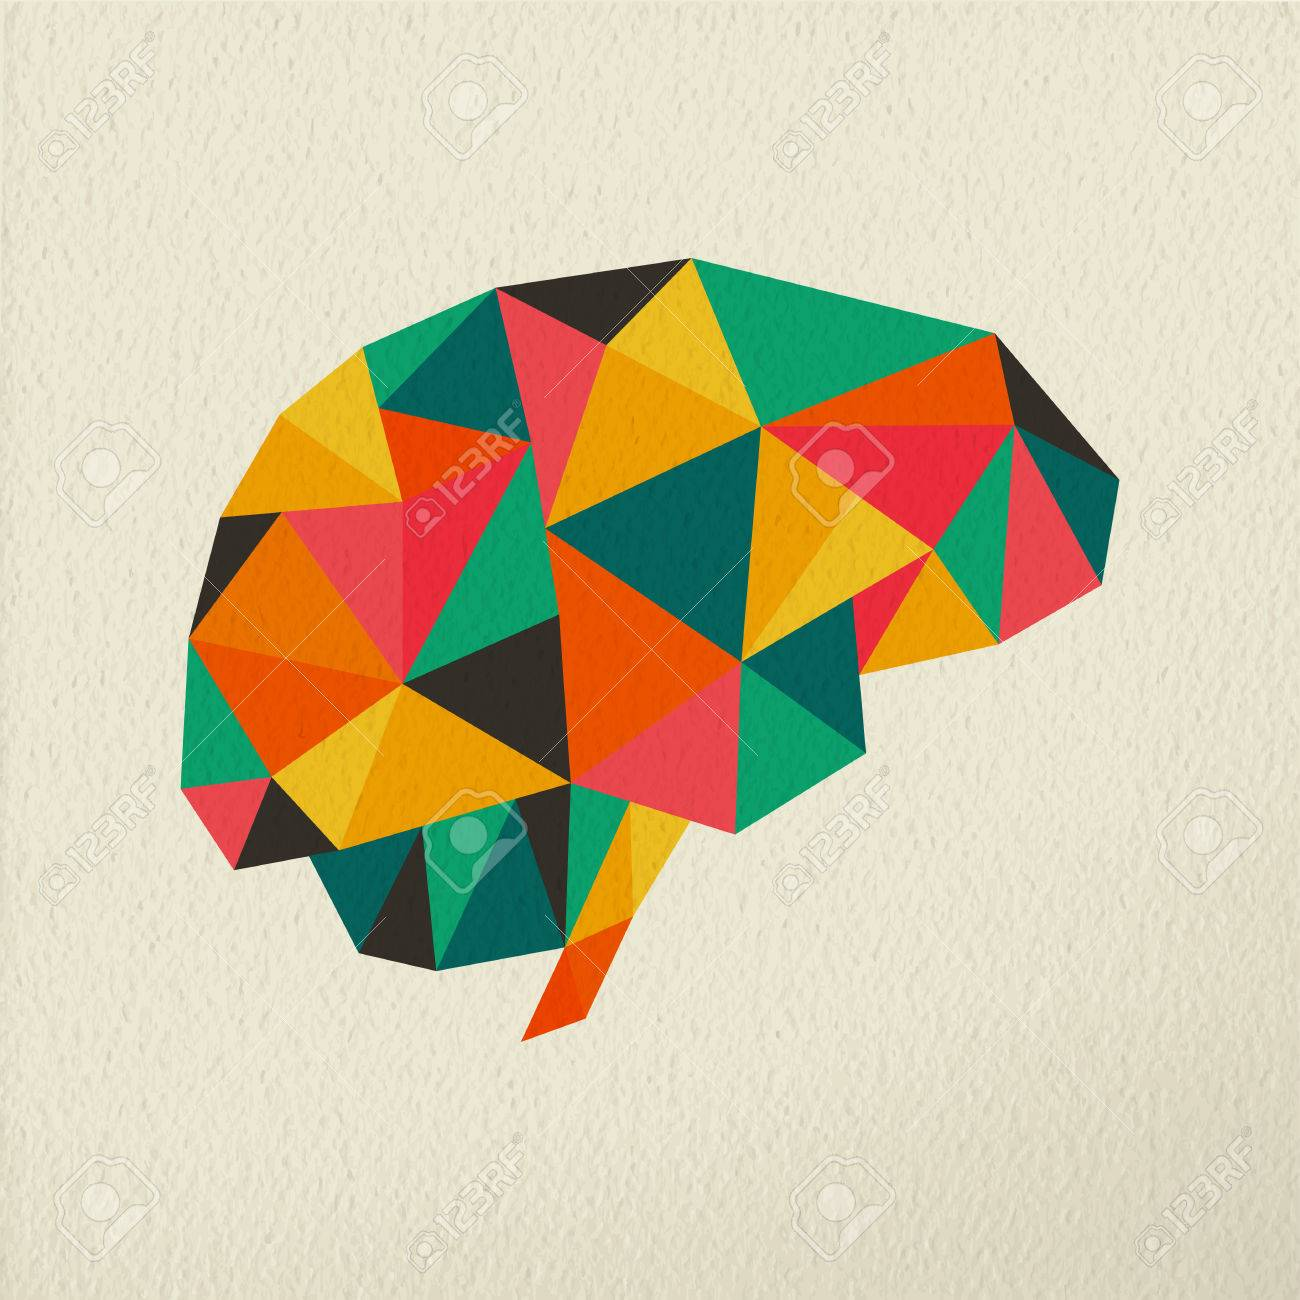 Art color psychology - Color Psychology Human Brain Colorful Low Poly Concept Illustration On Paper Texture Background